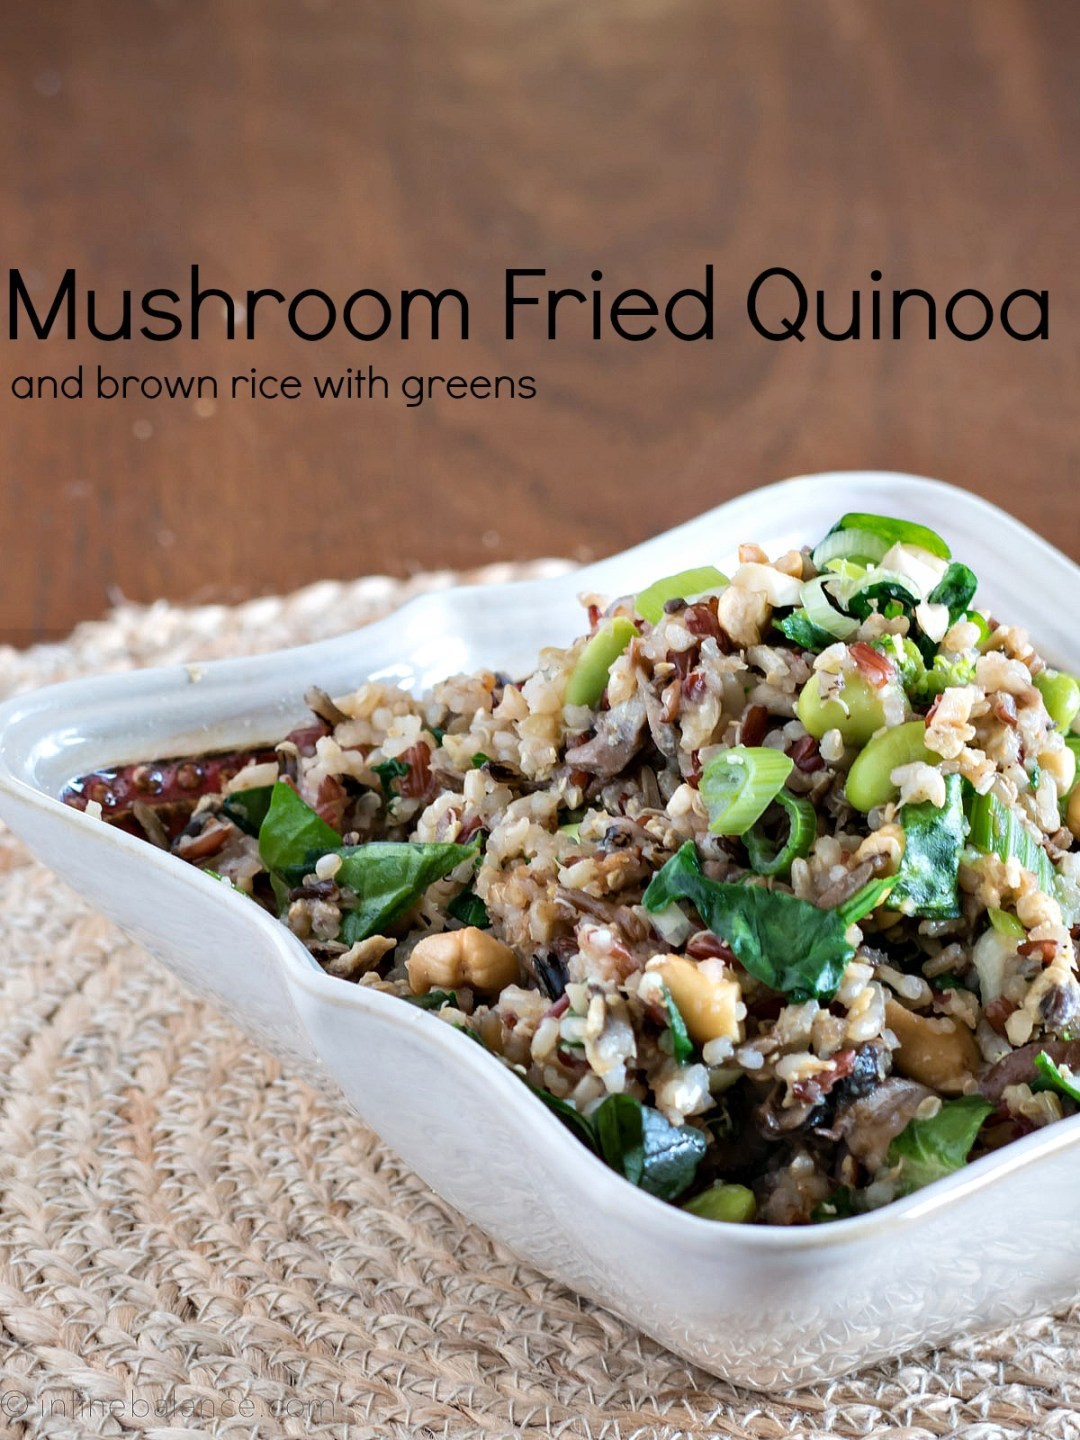 Mushroom Fried Quinoa and Brown Rice with Greens rice quinoa mushrooms meatlessmondays Eat your greens cashews broccoli